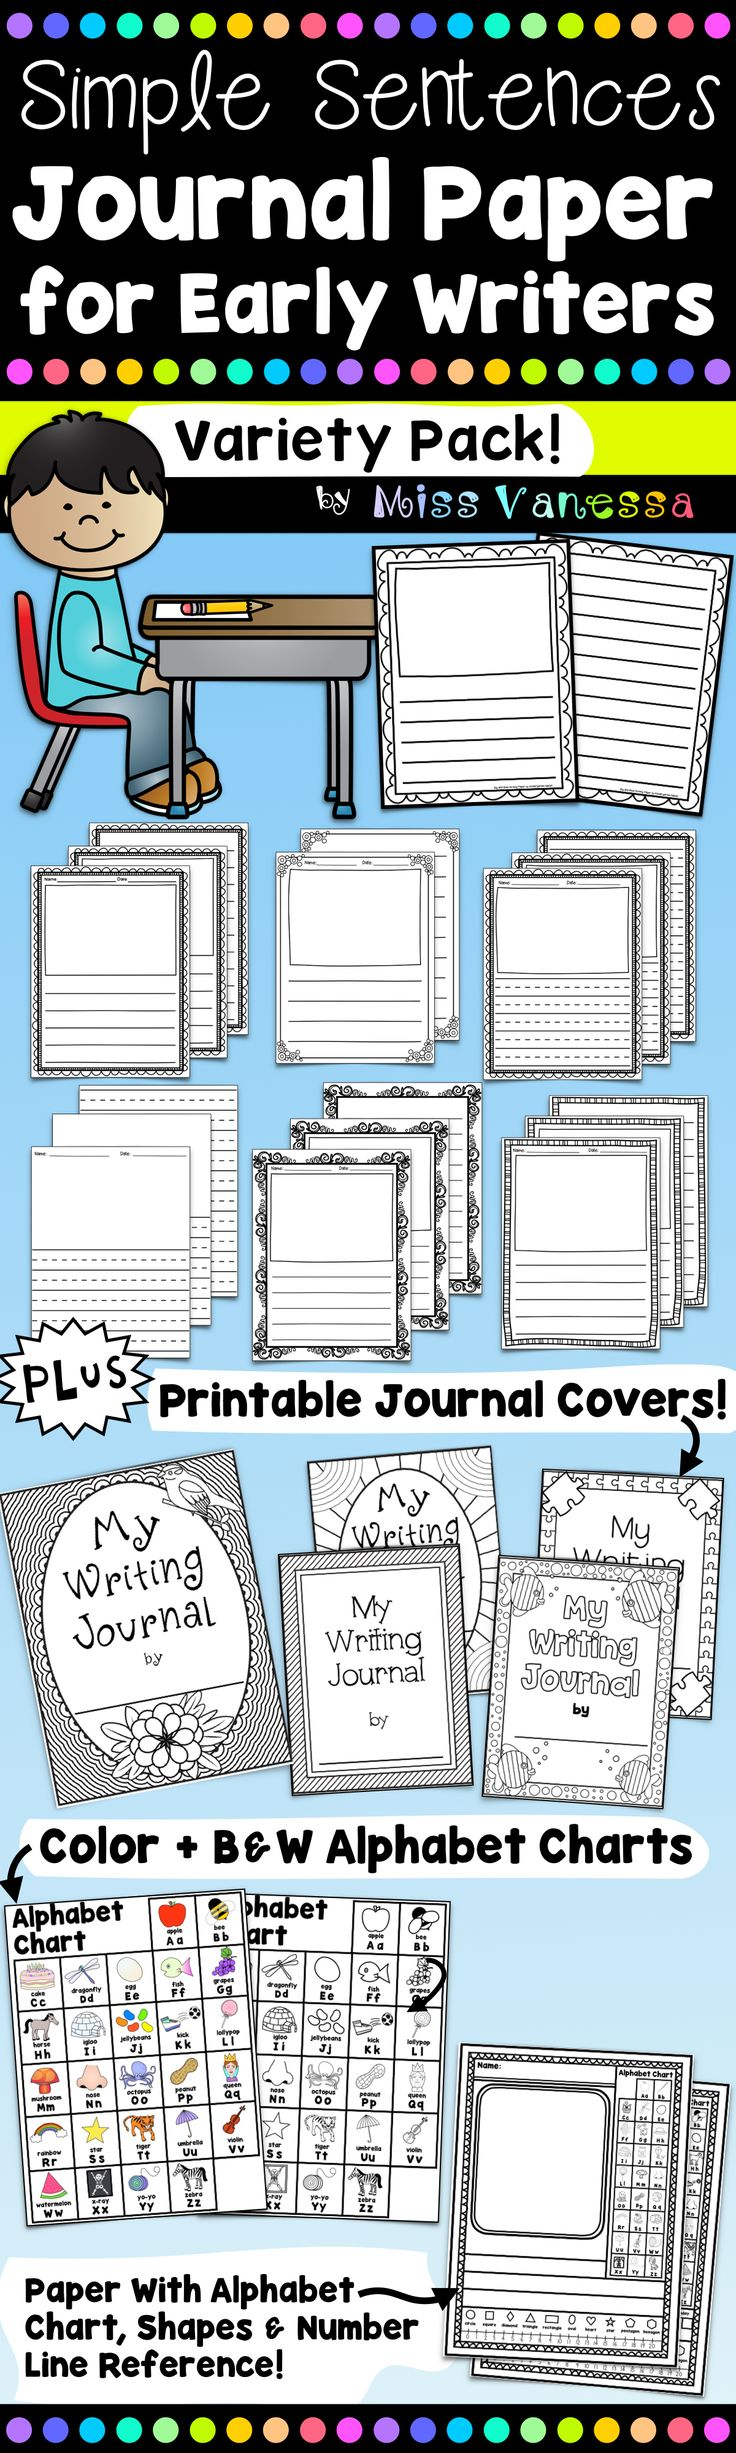 Writing Paper Bundle with Journal Covers & Alphabet Charts! {journal paper paper, kindergarten, lined, with picture, first grade, cute, with border, primary, elementary, horizontal, story, half sheet, stationary, printable}